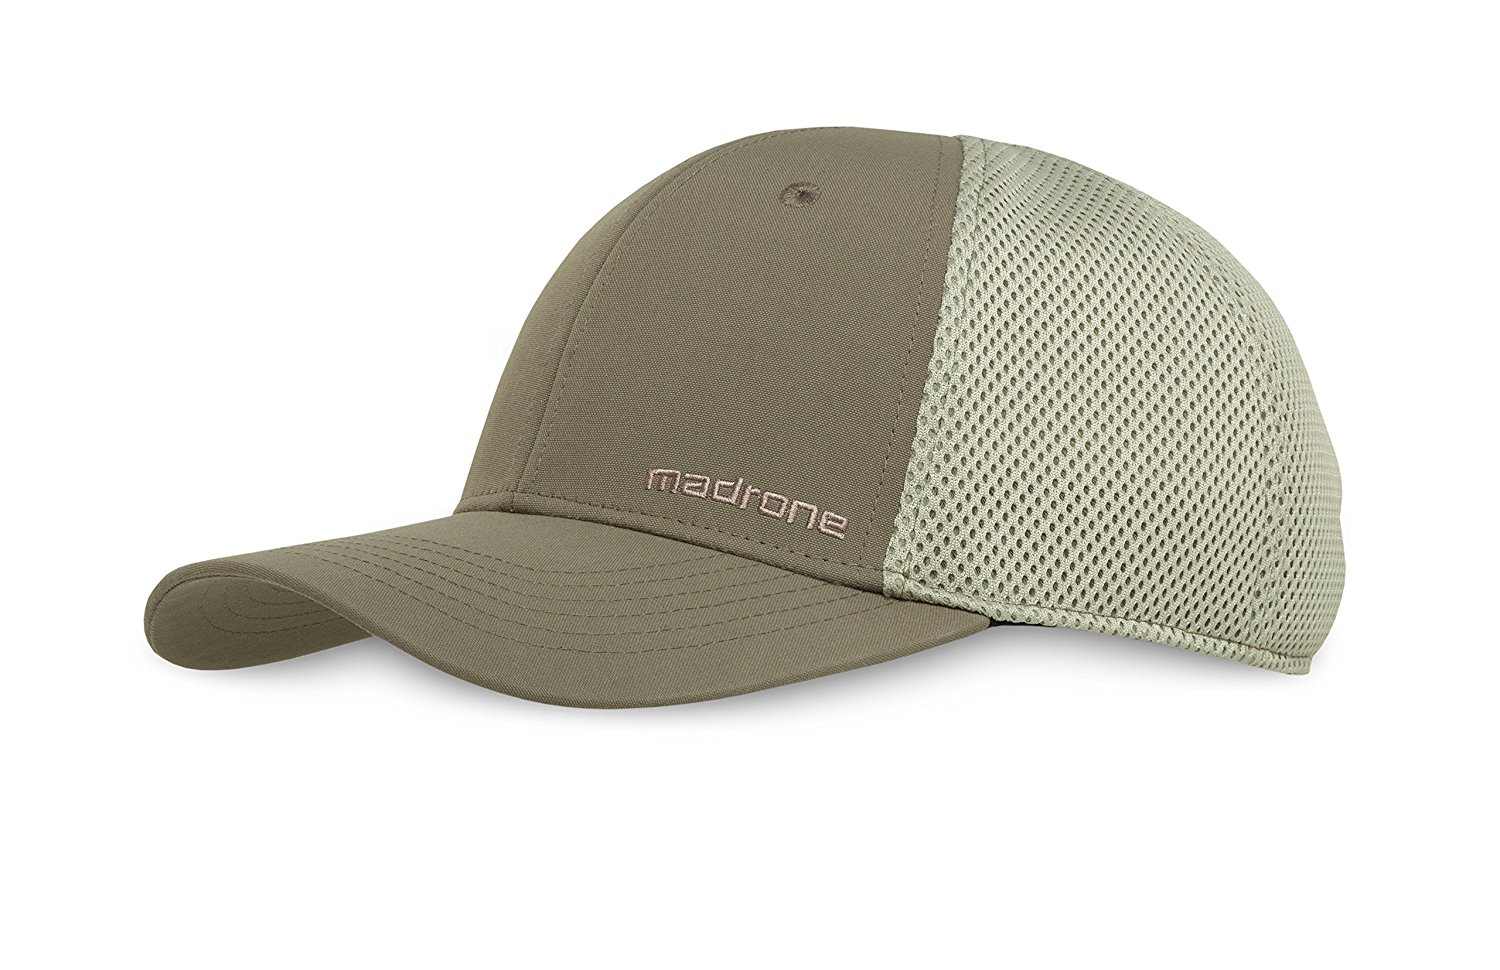 Buy Madrone Technical Headwear Everyday Trucker Cap in Cheap Price ... 6c266149fd8